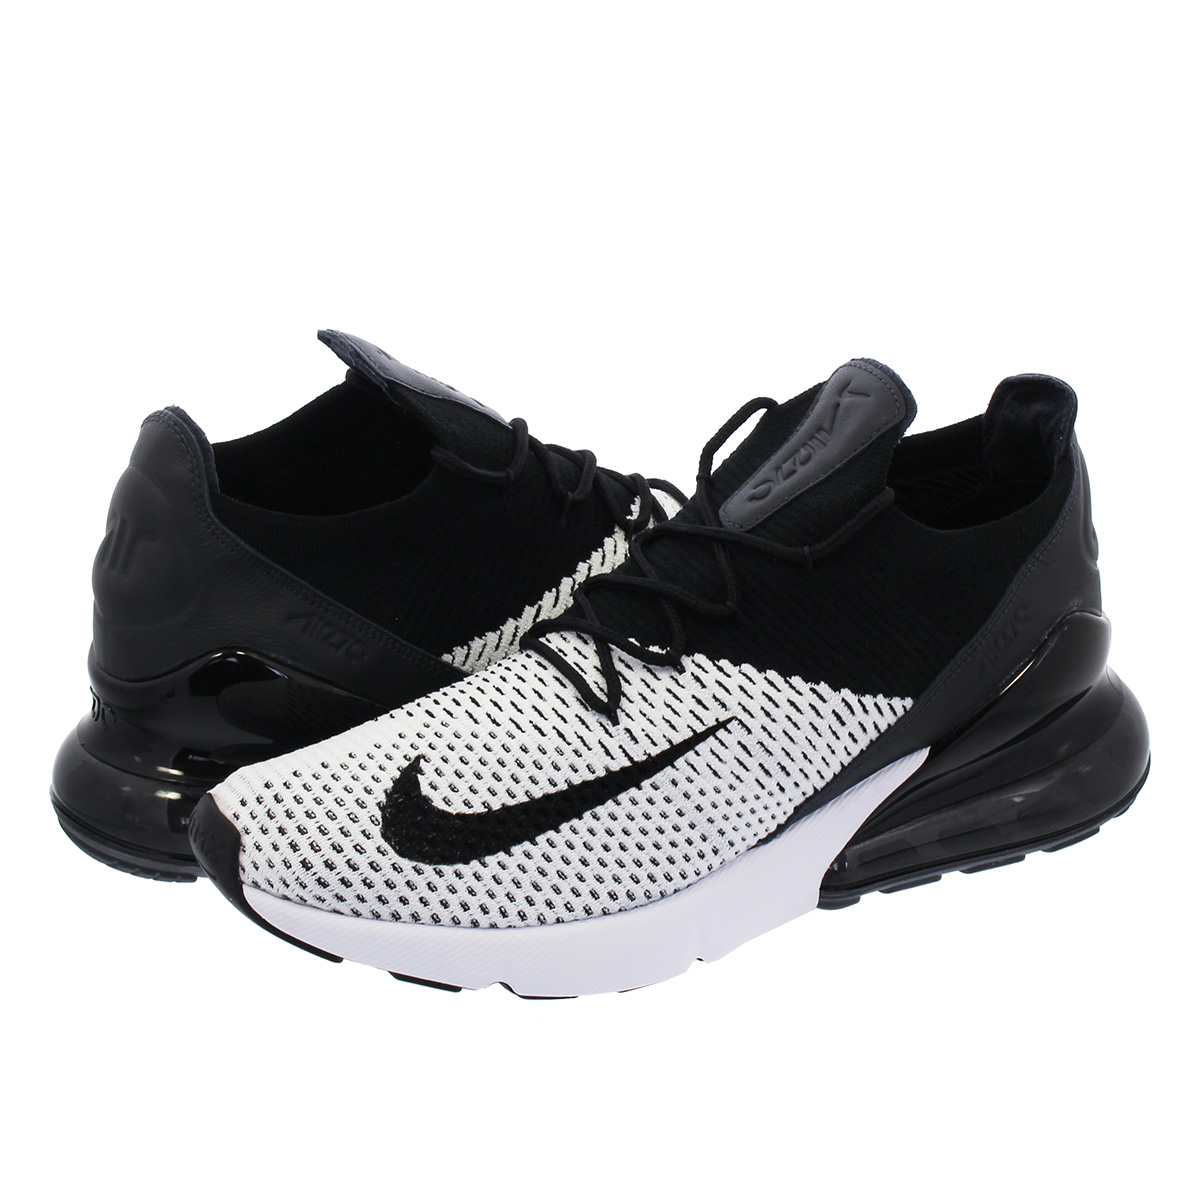 ffb35c38b0 NIKE AIR MAX 270 FLYKNIT Kie Ney AMAX 270 fried food knit WHITE/BLACK/ ...